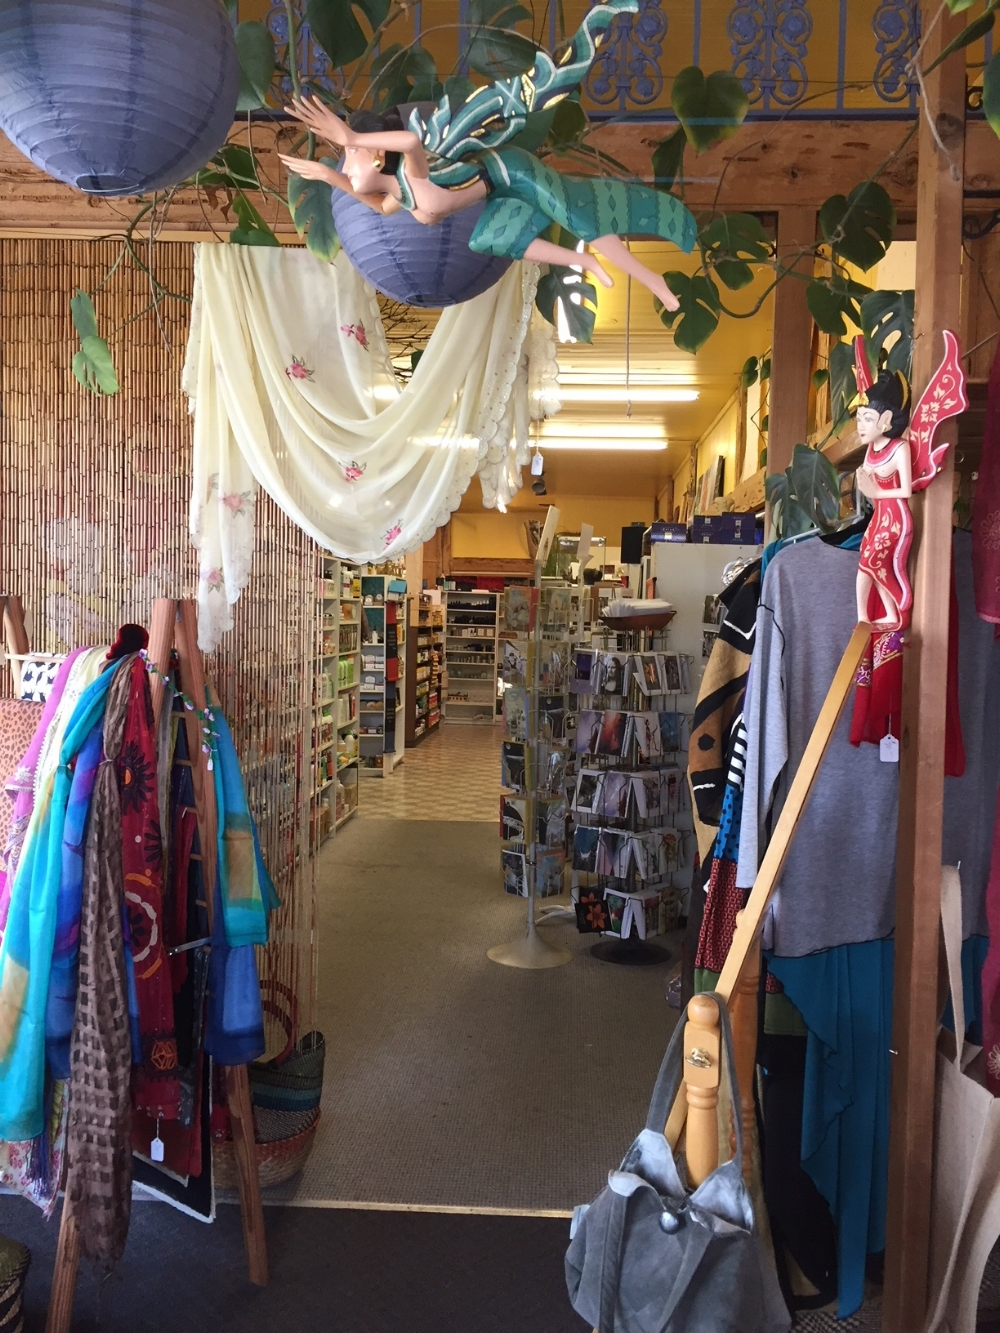 the gift shop area has a lovely selection of cards, scarves, handbags and clothing for all ages.